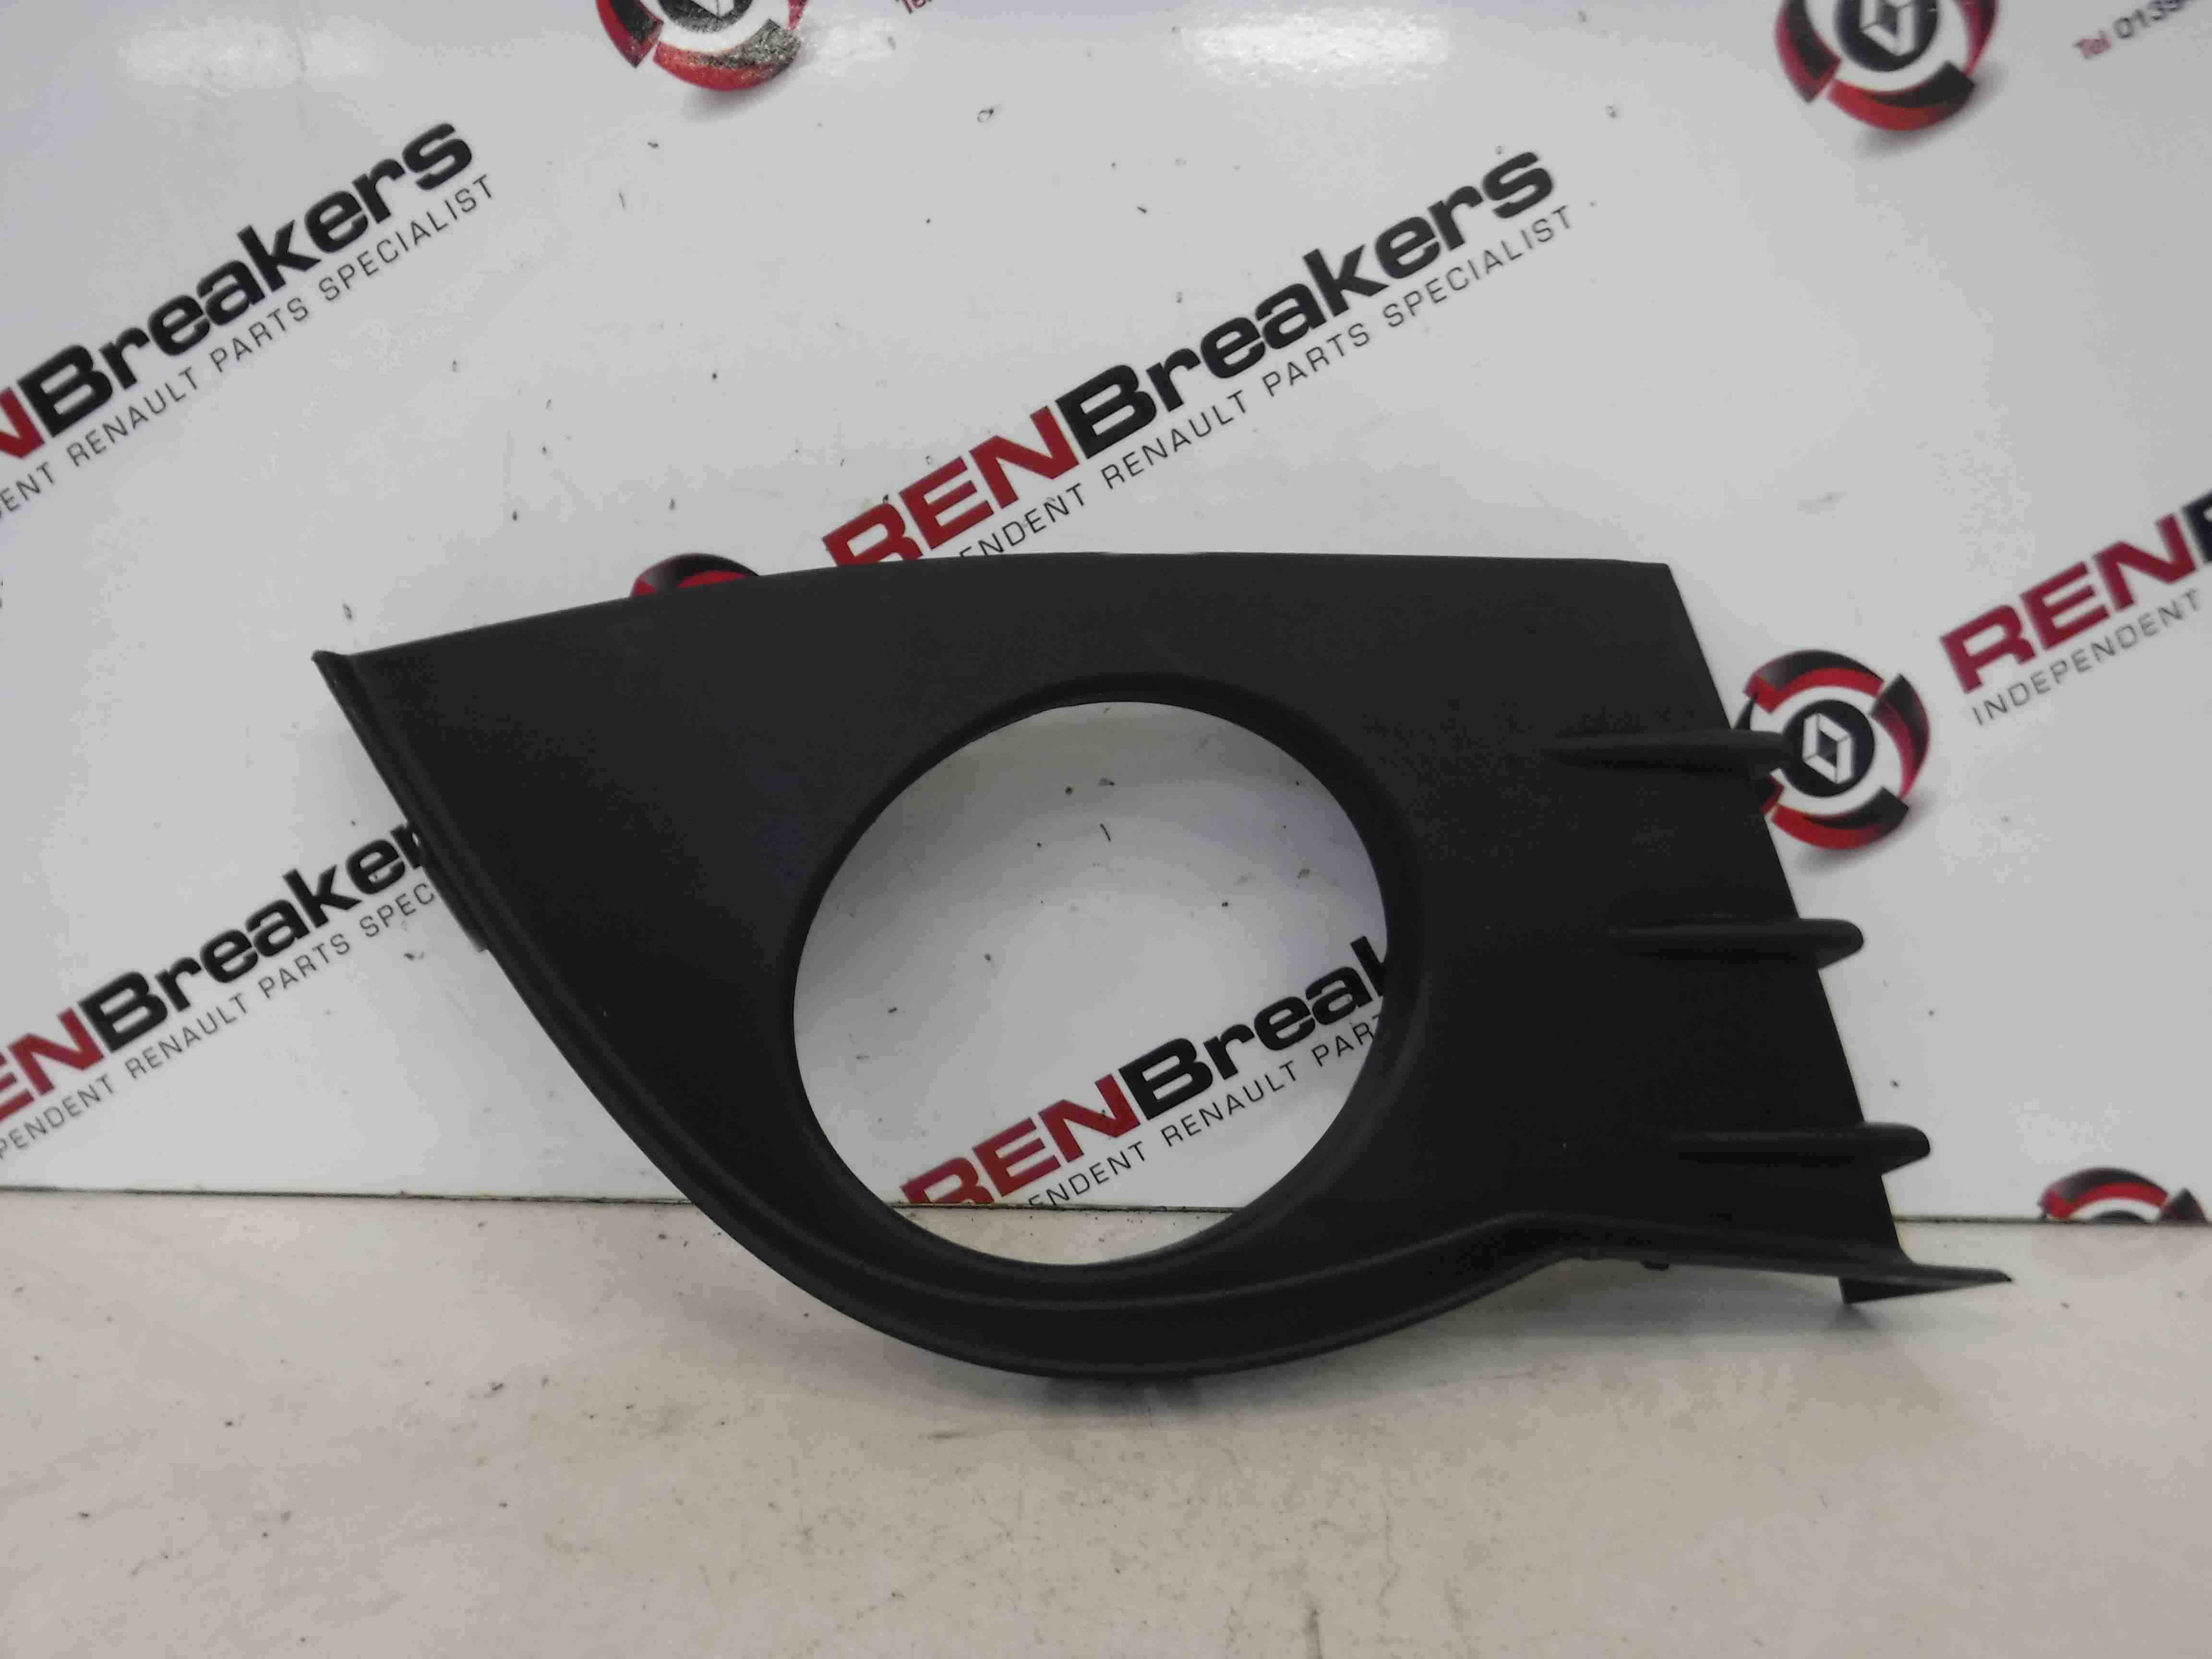 Renault Clio MK3 2005-2009 Drivers OSF Front Fog Light Surround Cover 8200682296